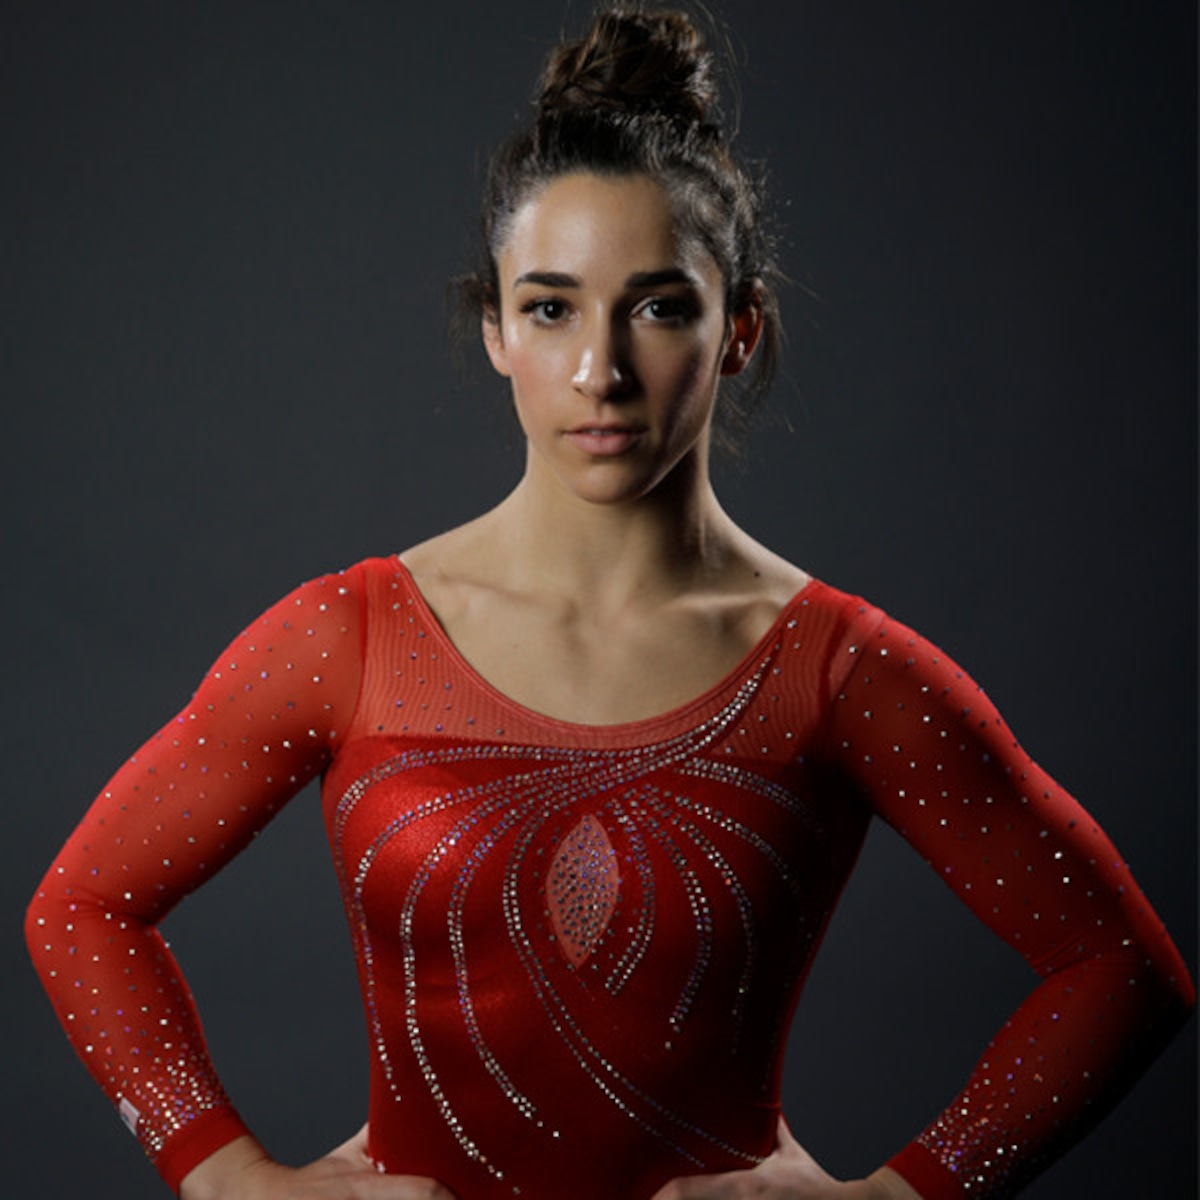 Image result for Aly Raisman